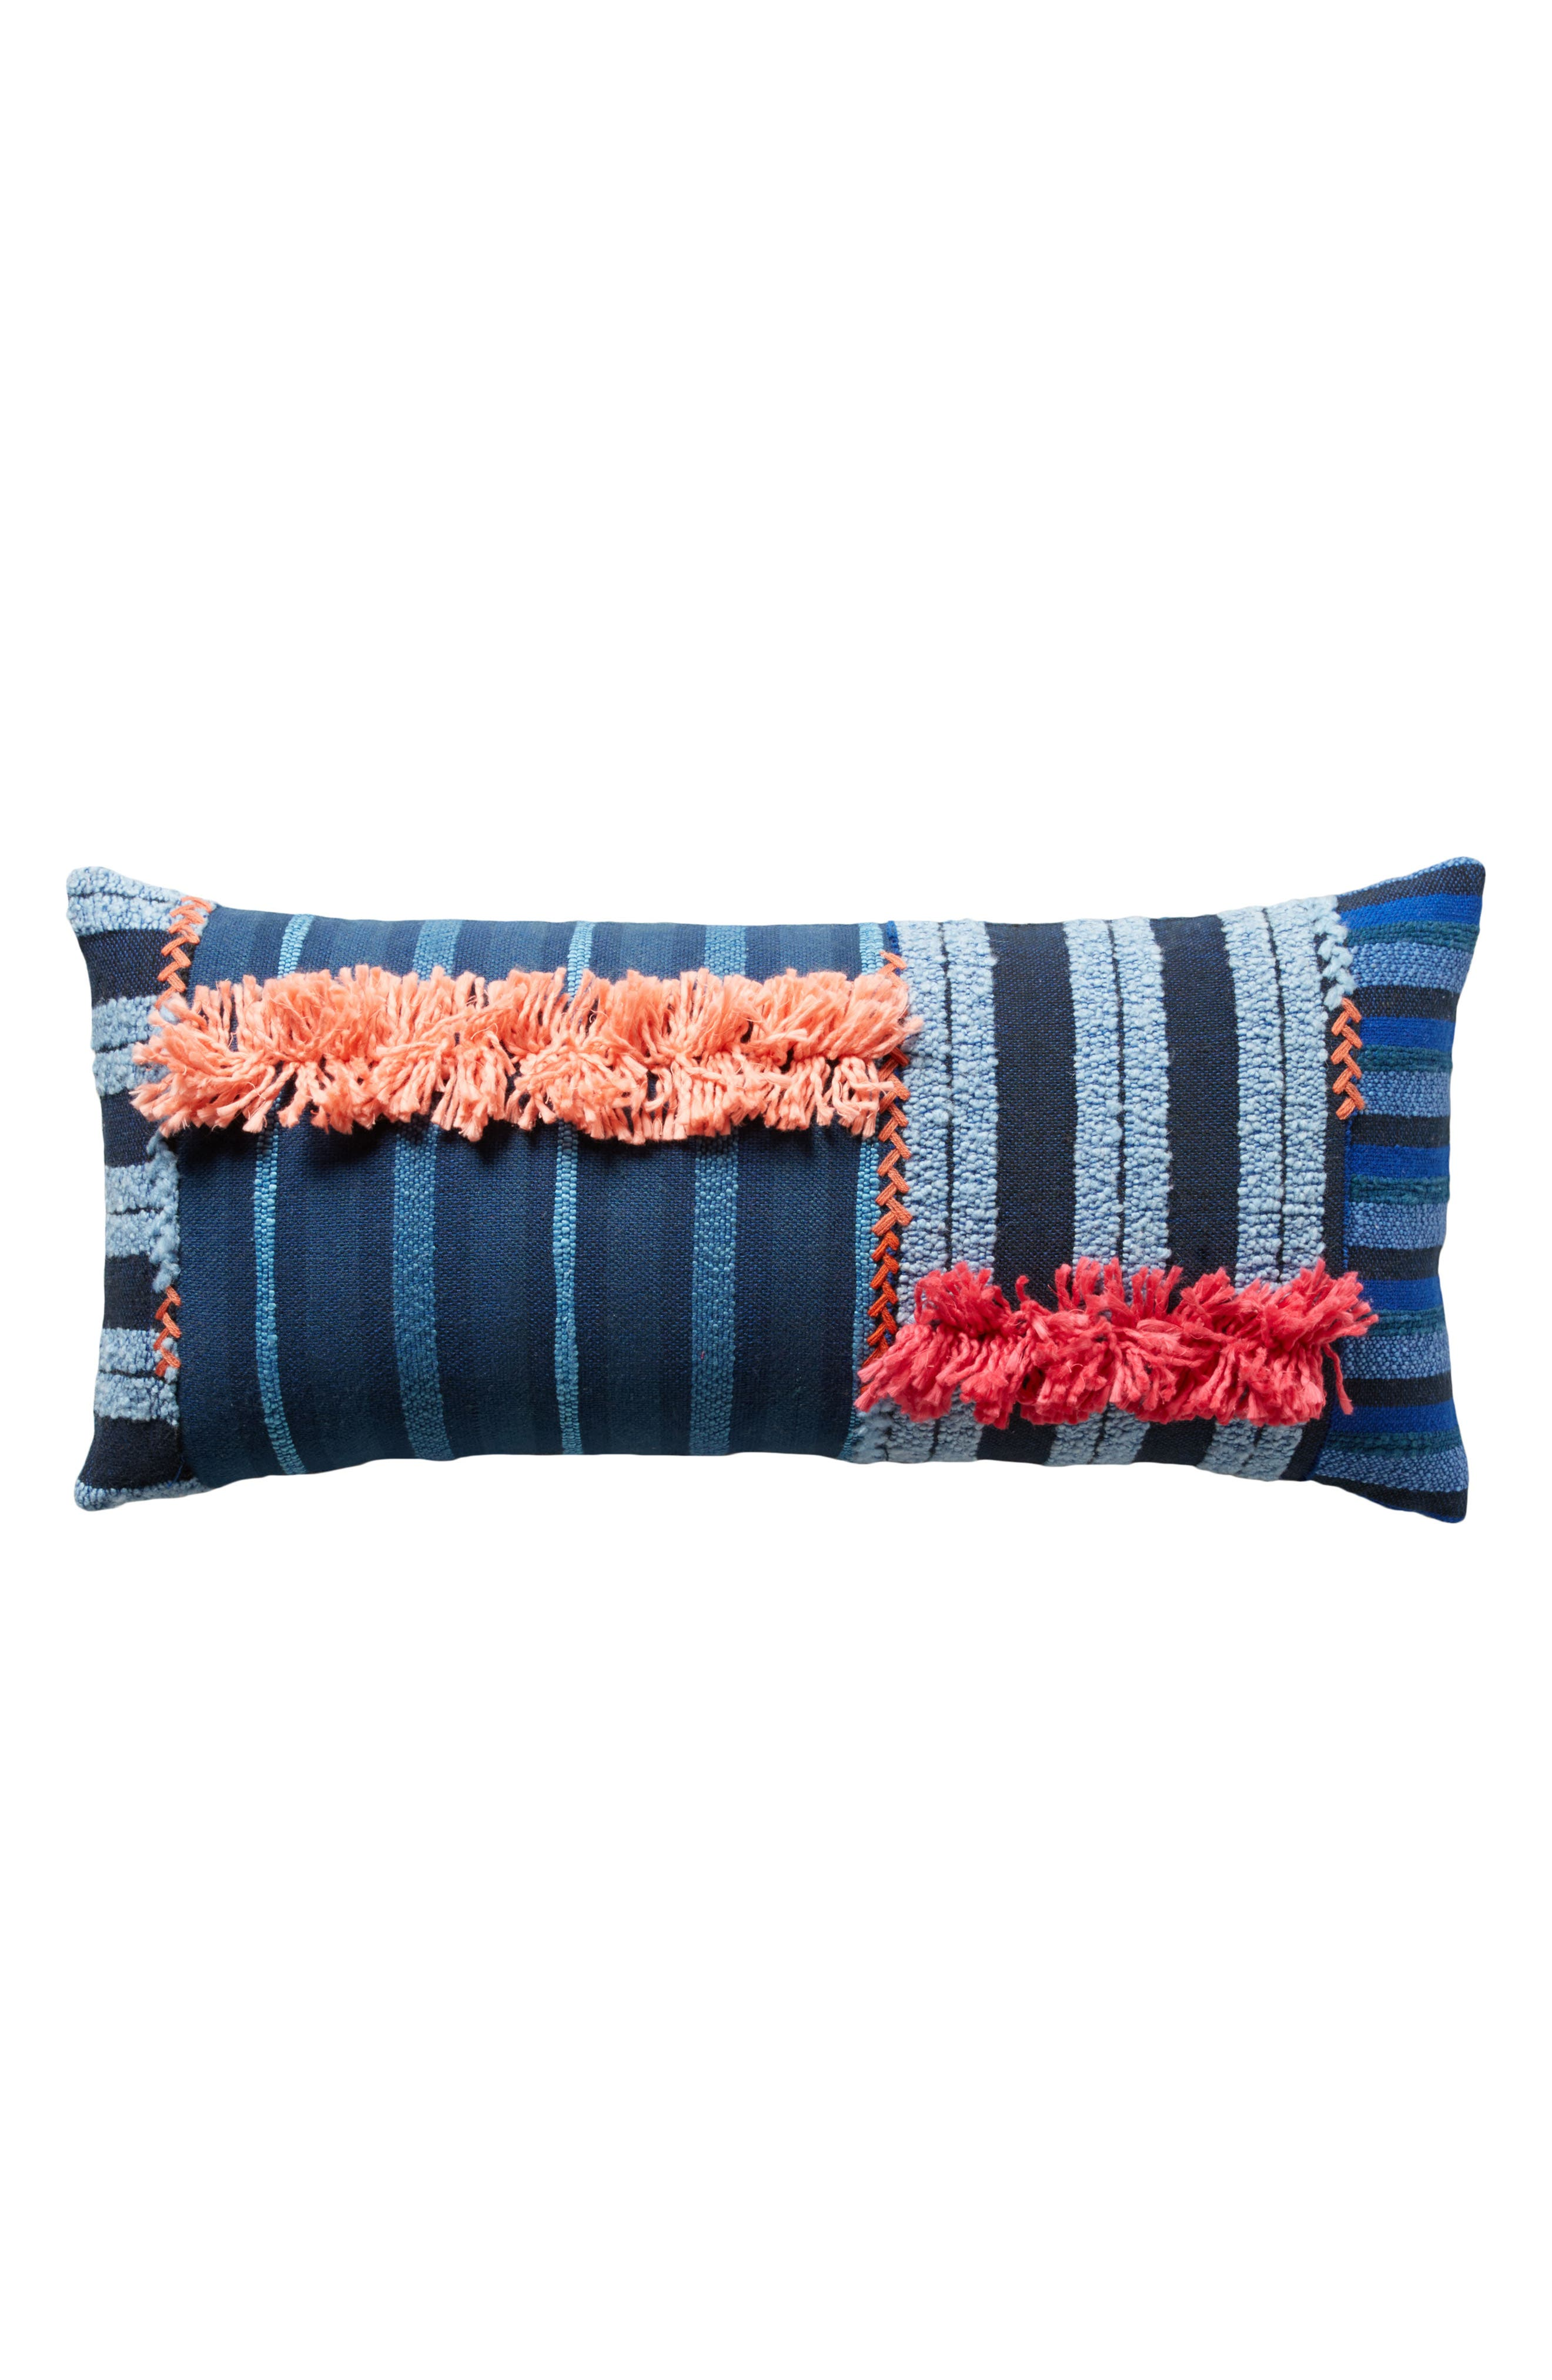 Yoursa Accent Pillow,                         Main,                         color, 400